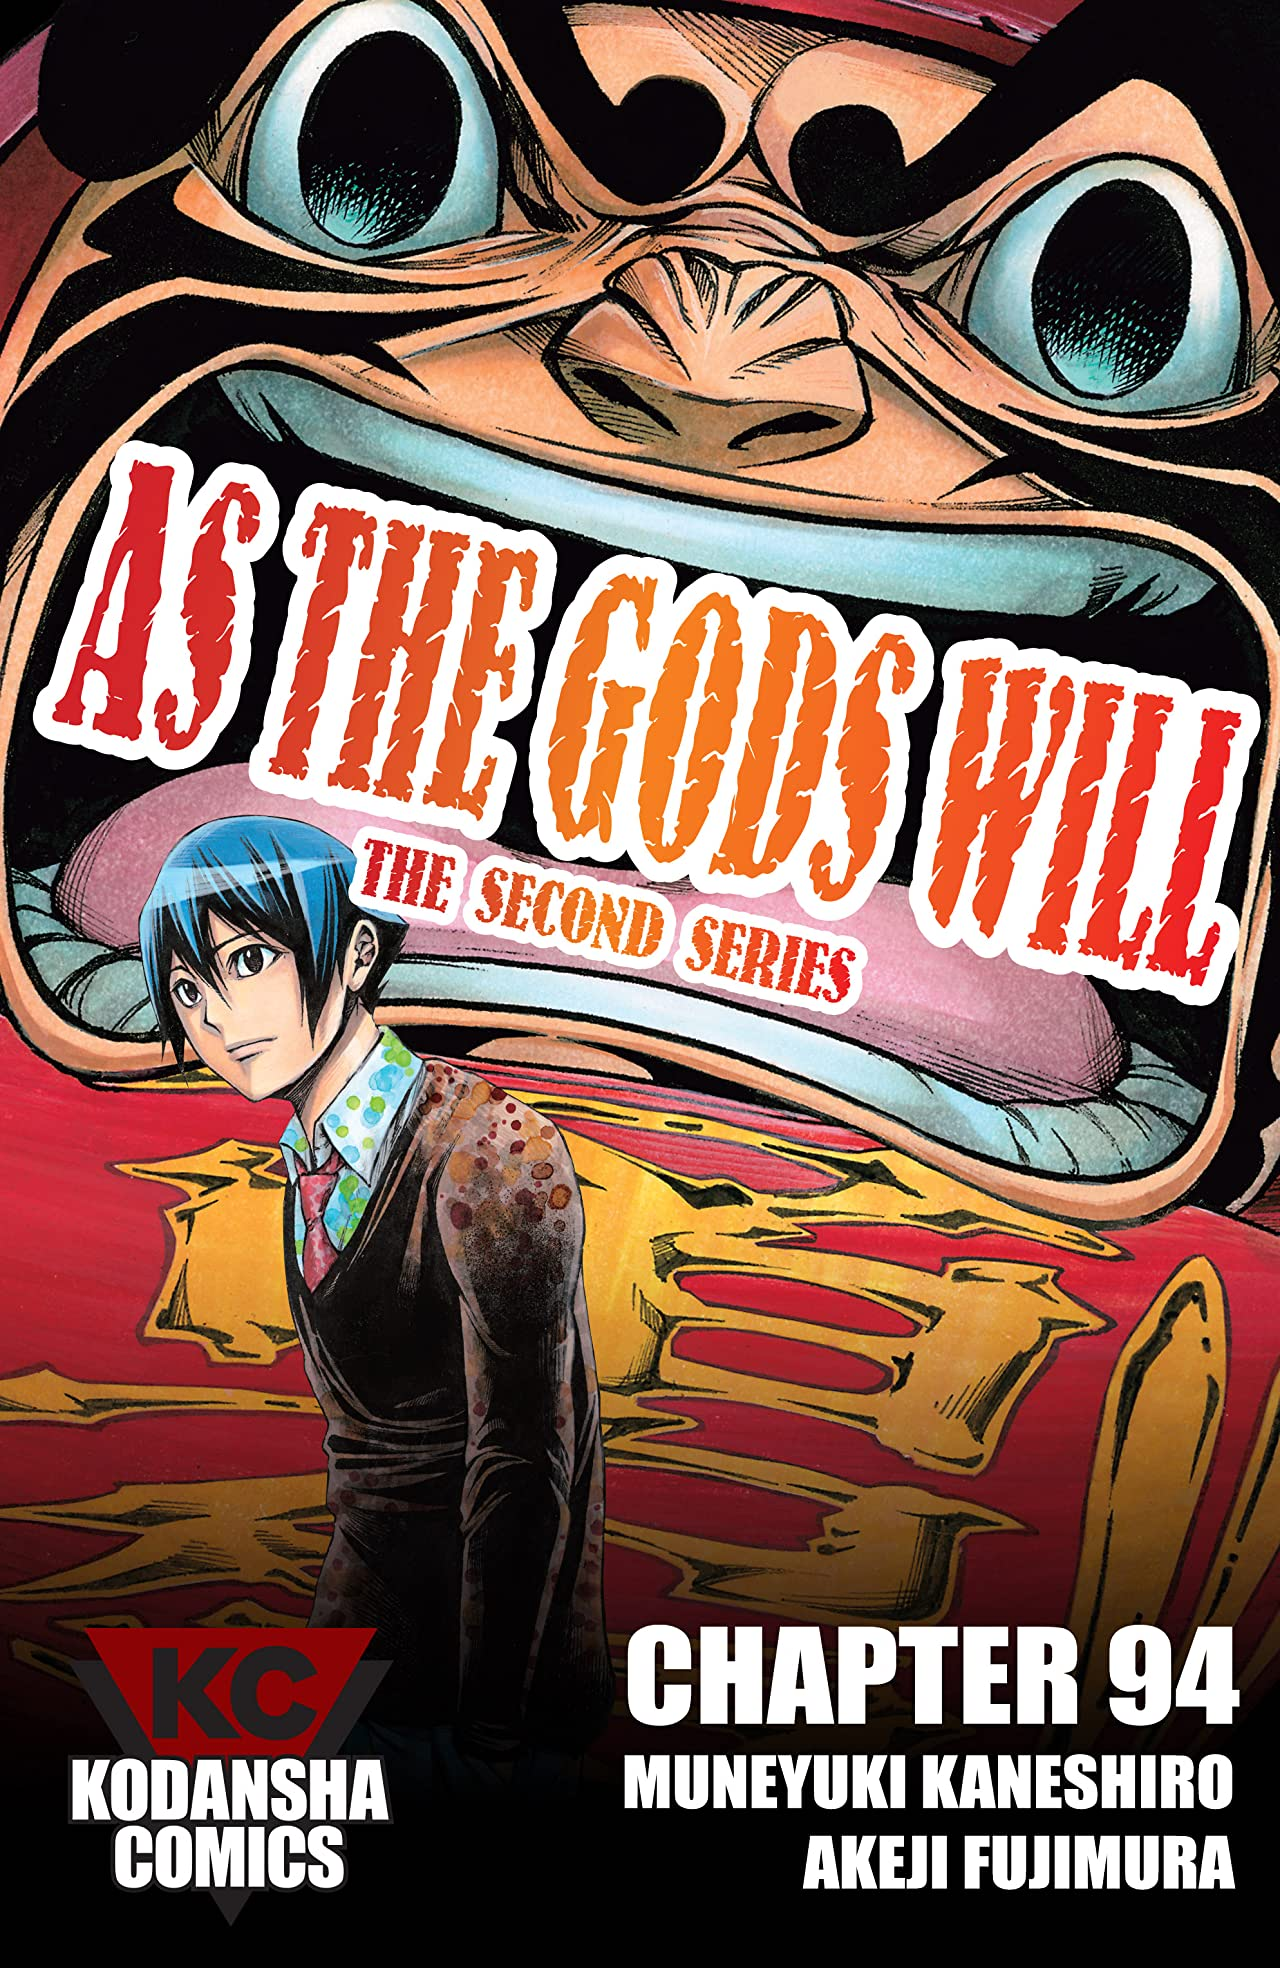 As The Gods Will: The Second Series #94